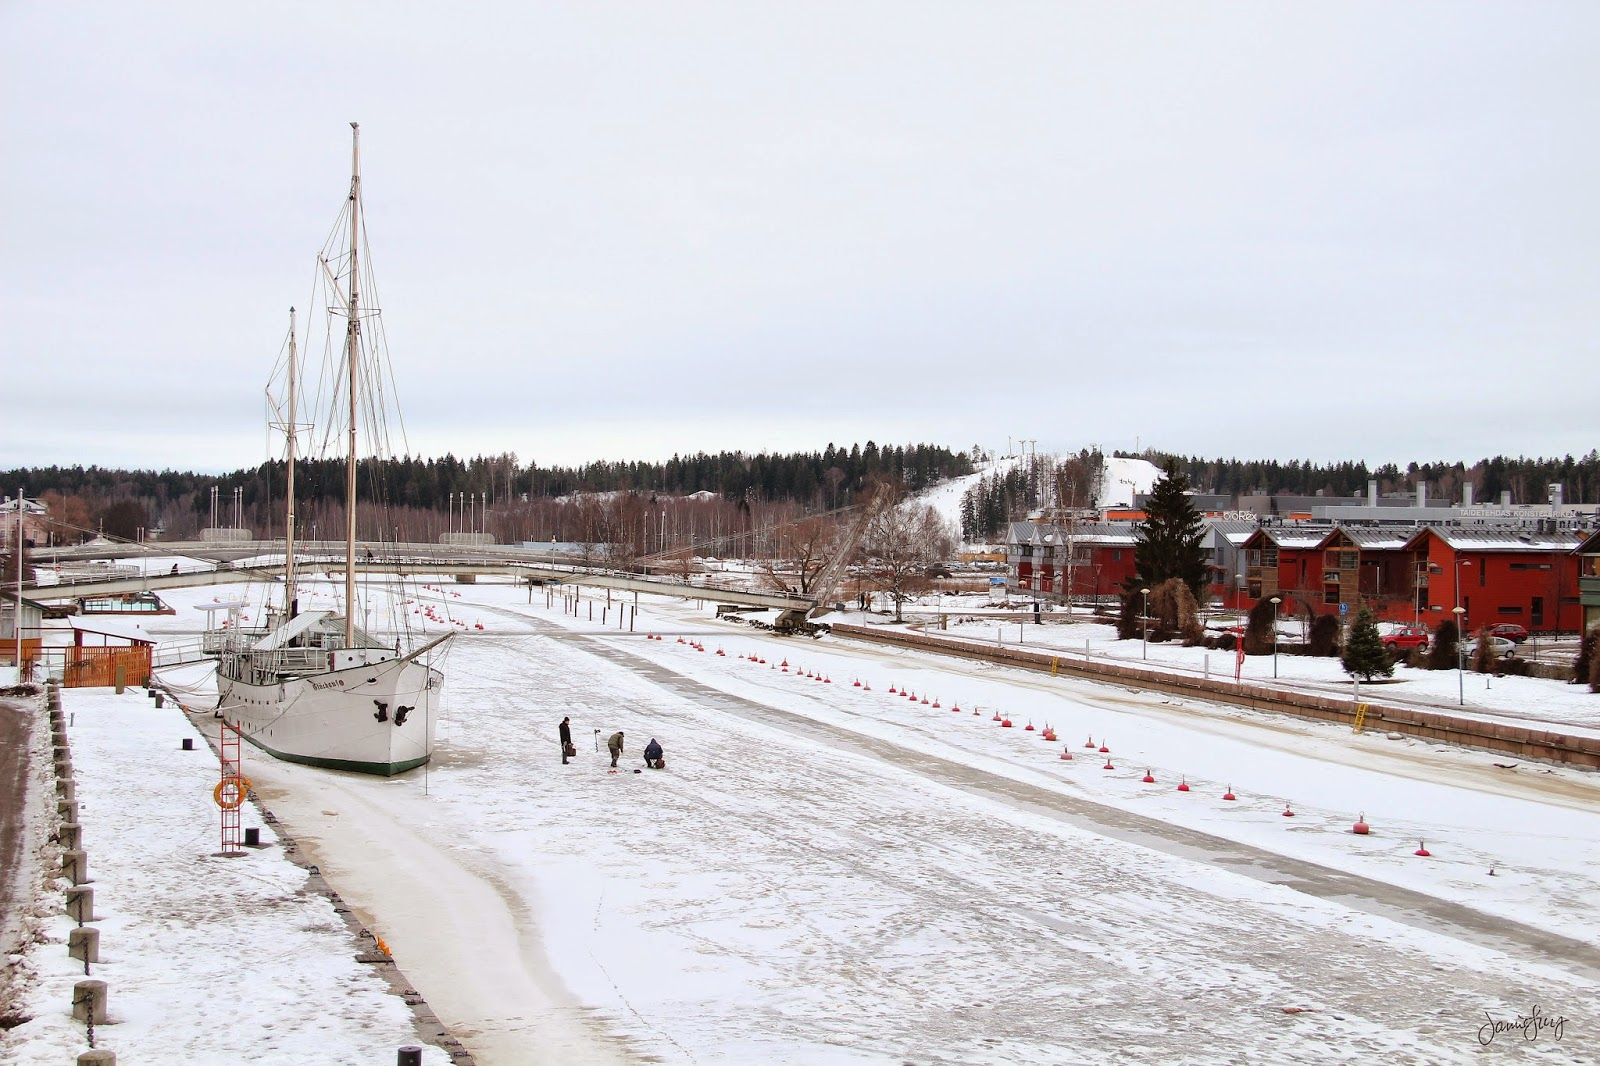 Winter Fishing at the Porvoo River, Finland